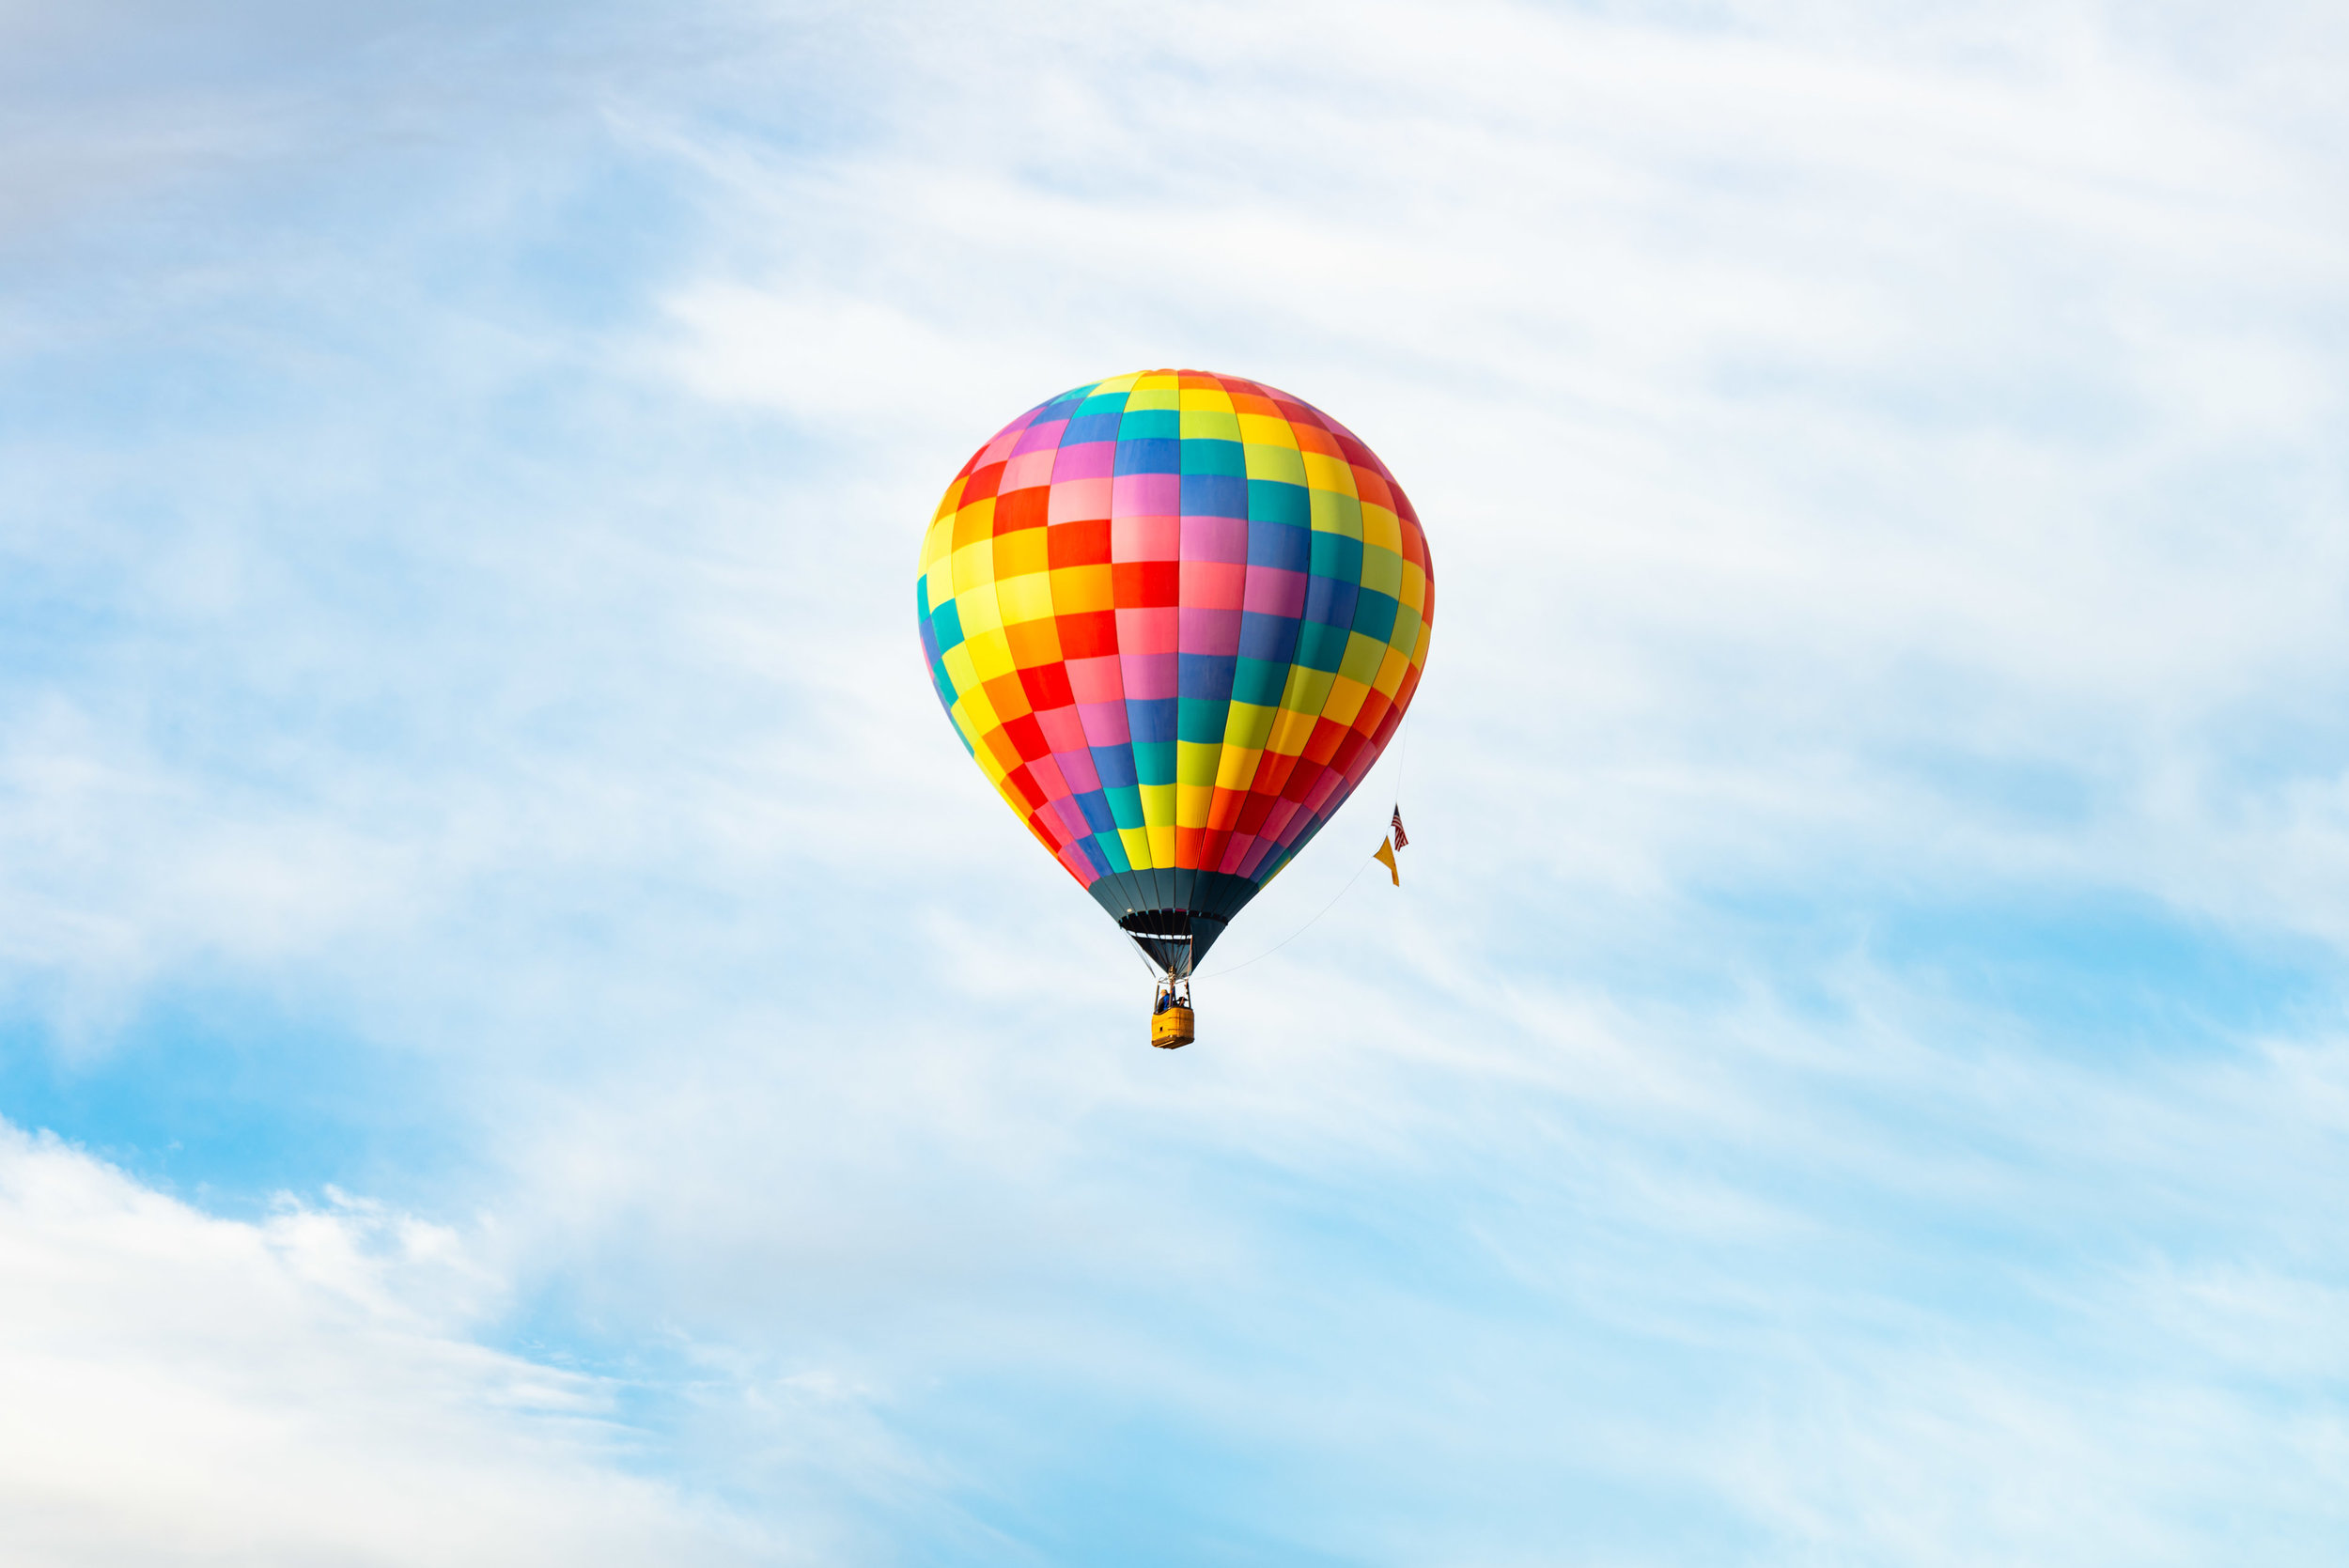 Shot at 116mm. The telephoto is great for capturing single balloons in flight.